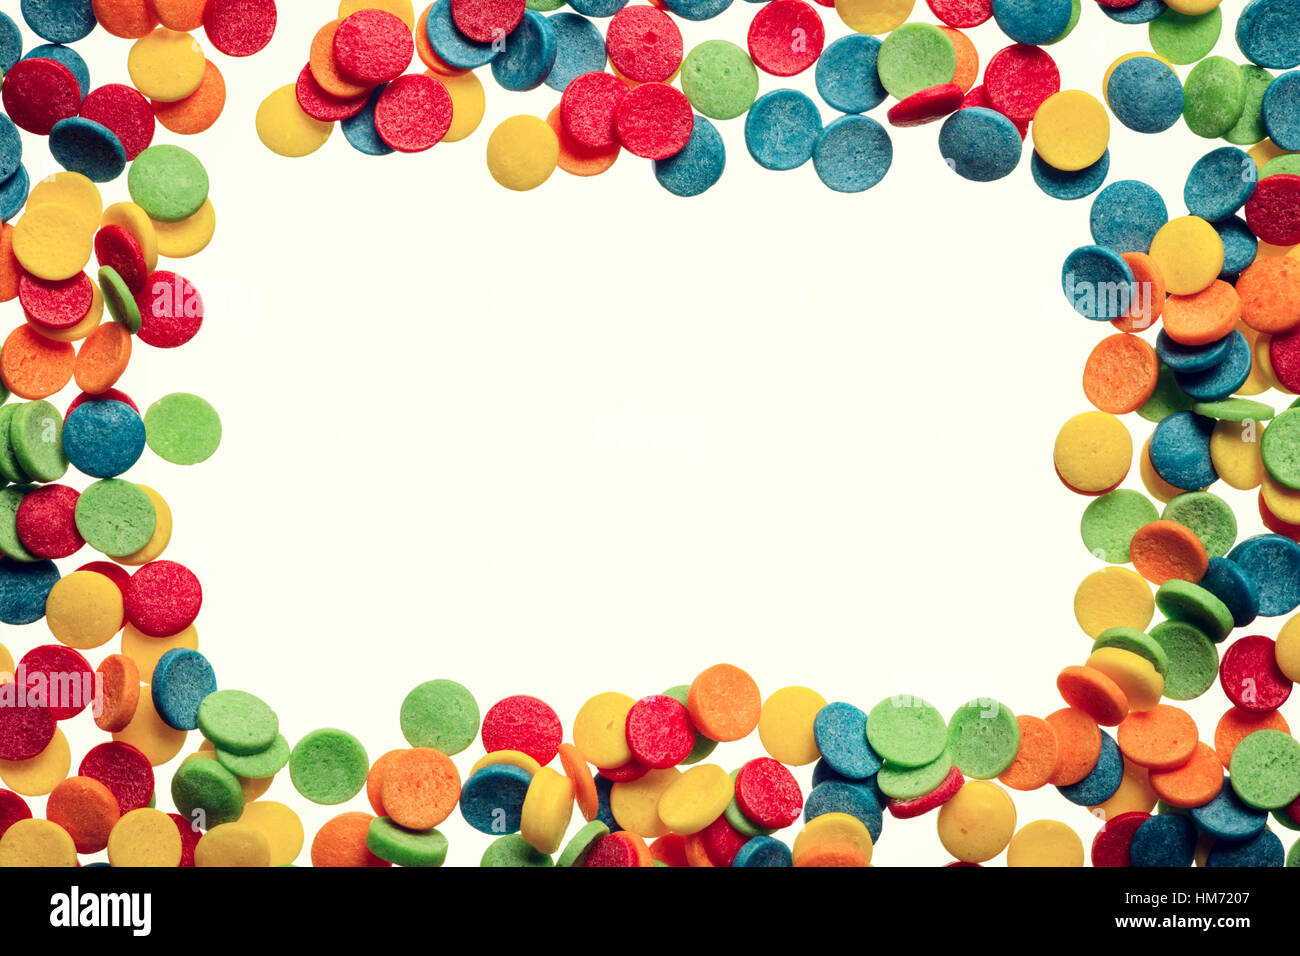 confetti frame for birthday party background image isolated on